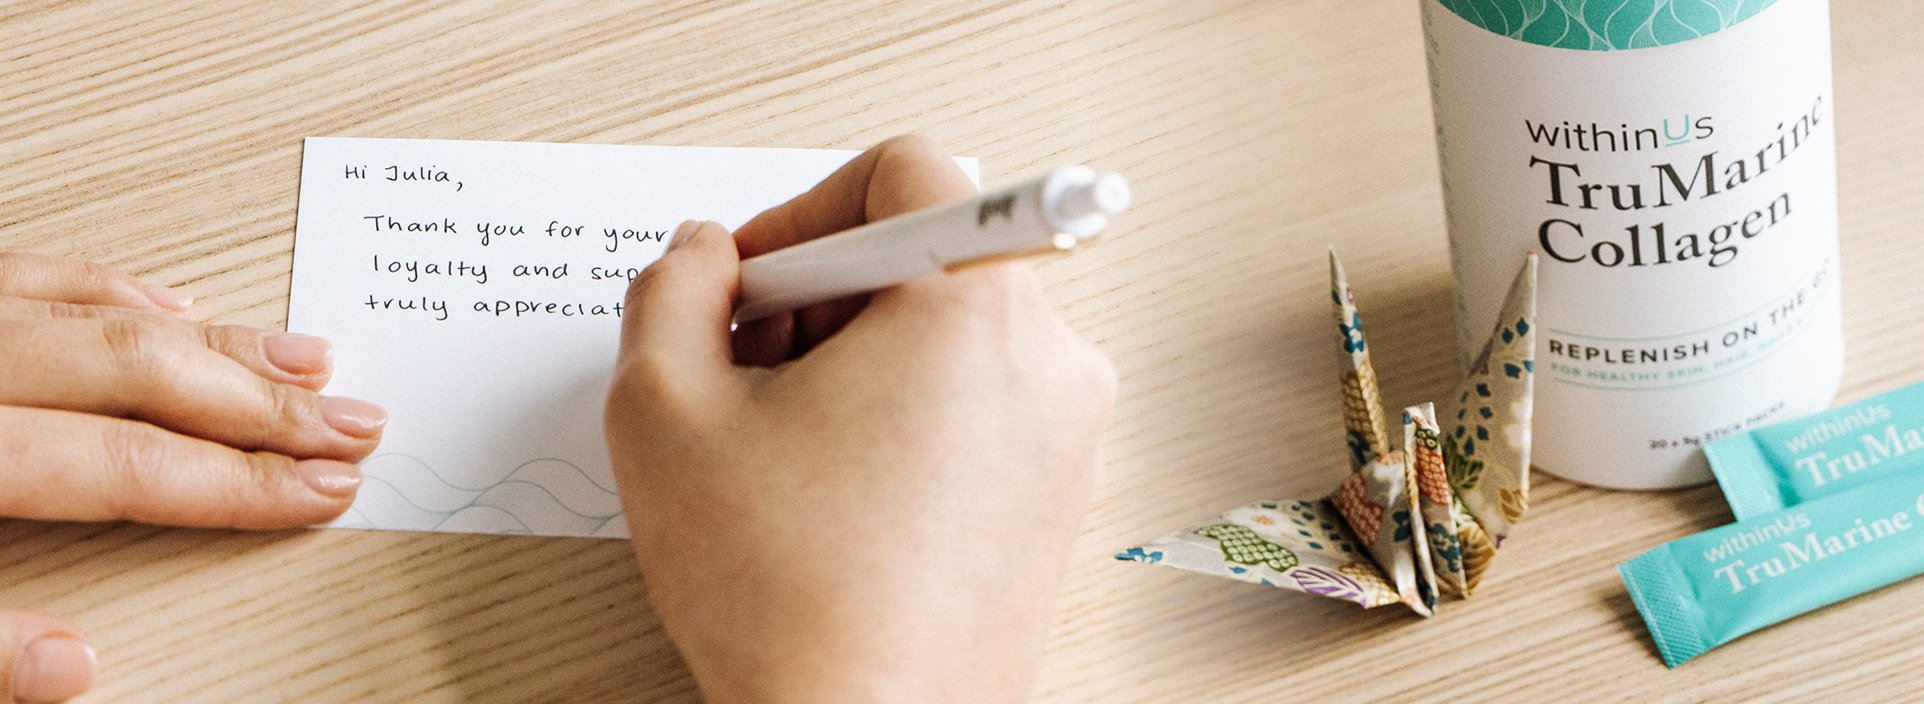 Our Philosophy - Woman writing a Thank you letter with WithinUs TruMarine Collagen and a paper crane beside her.